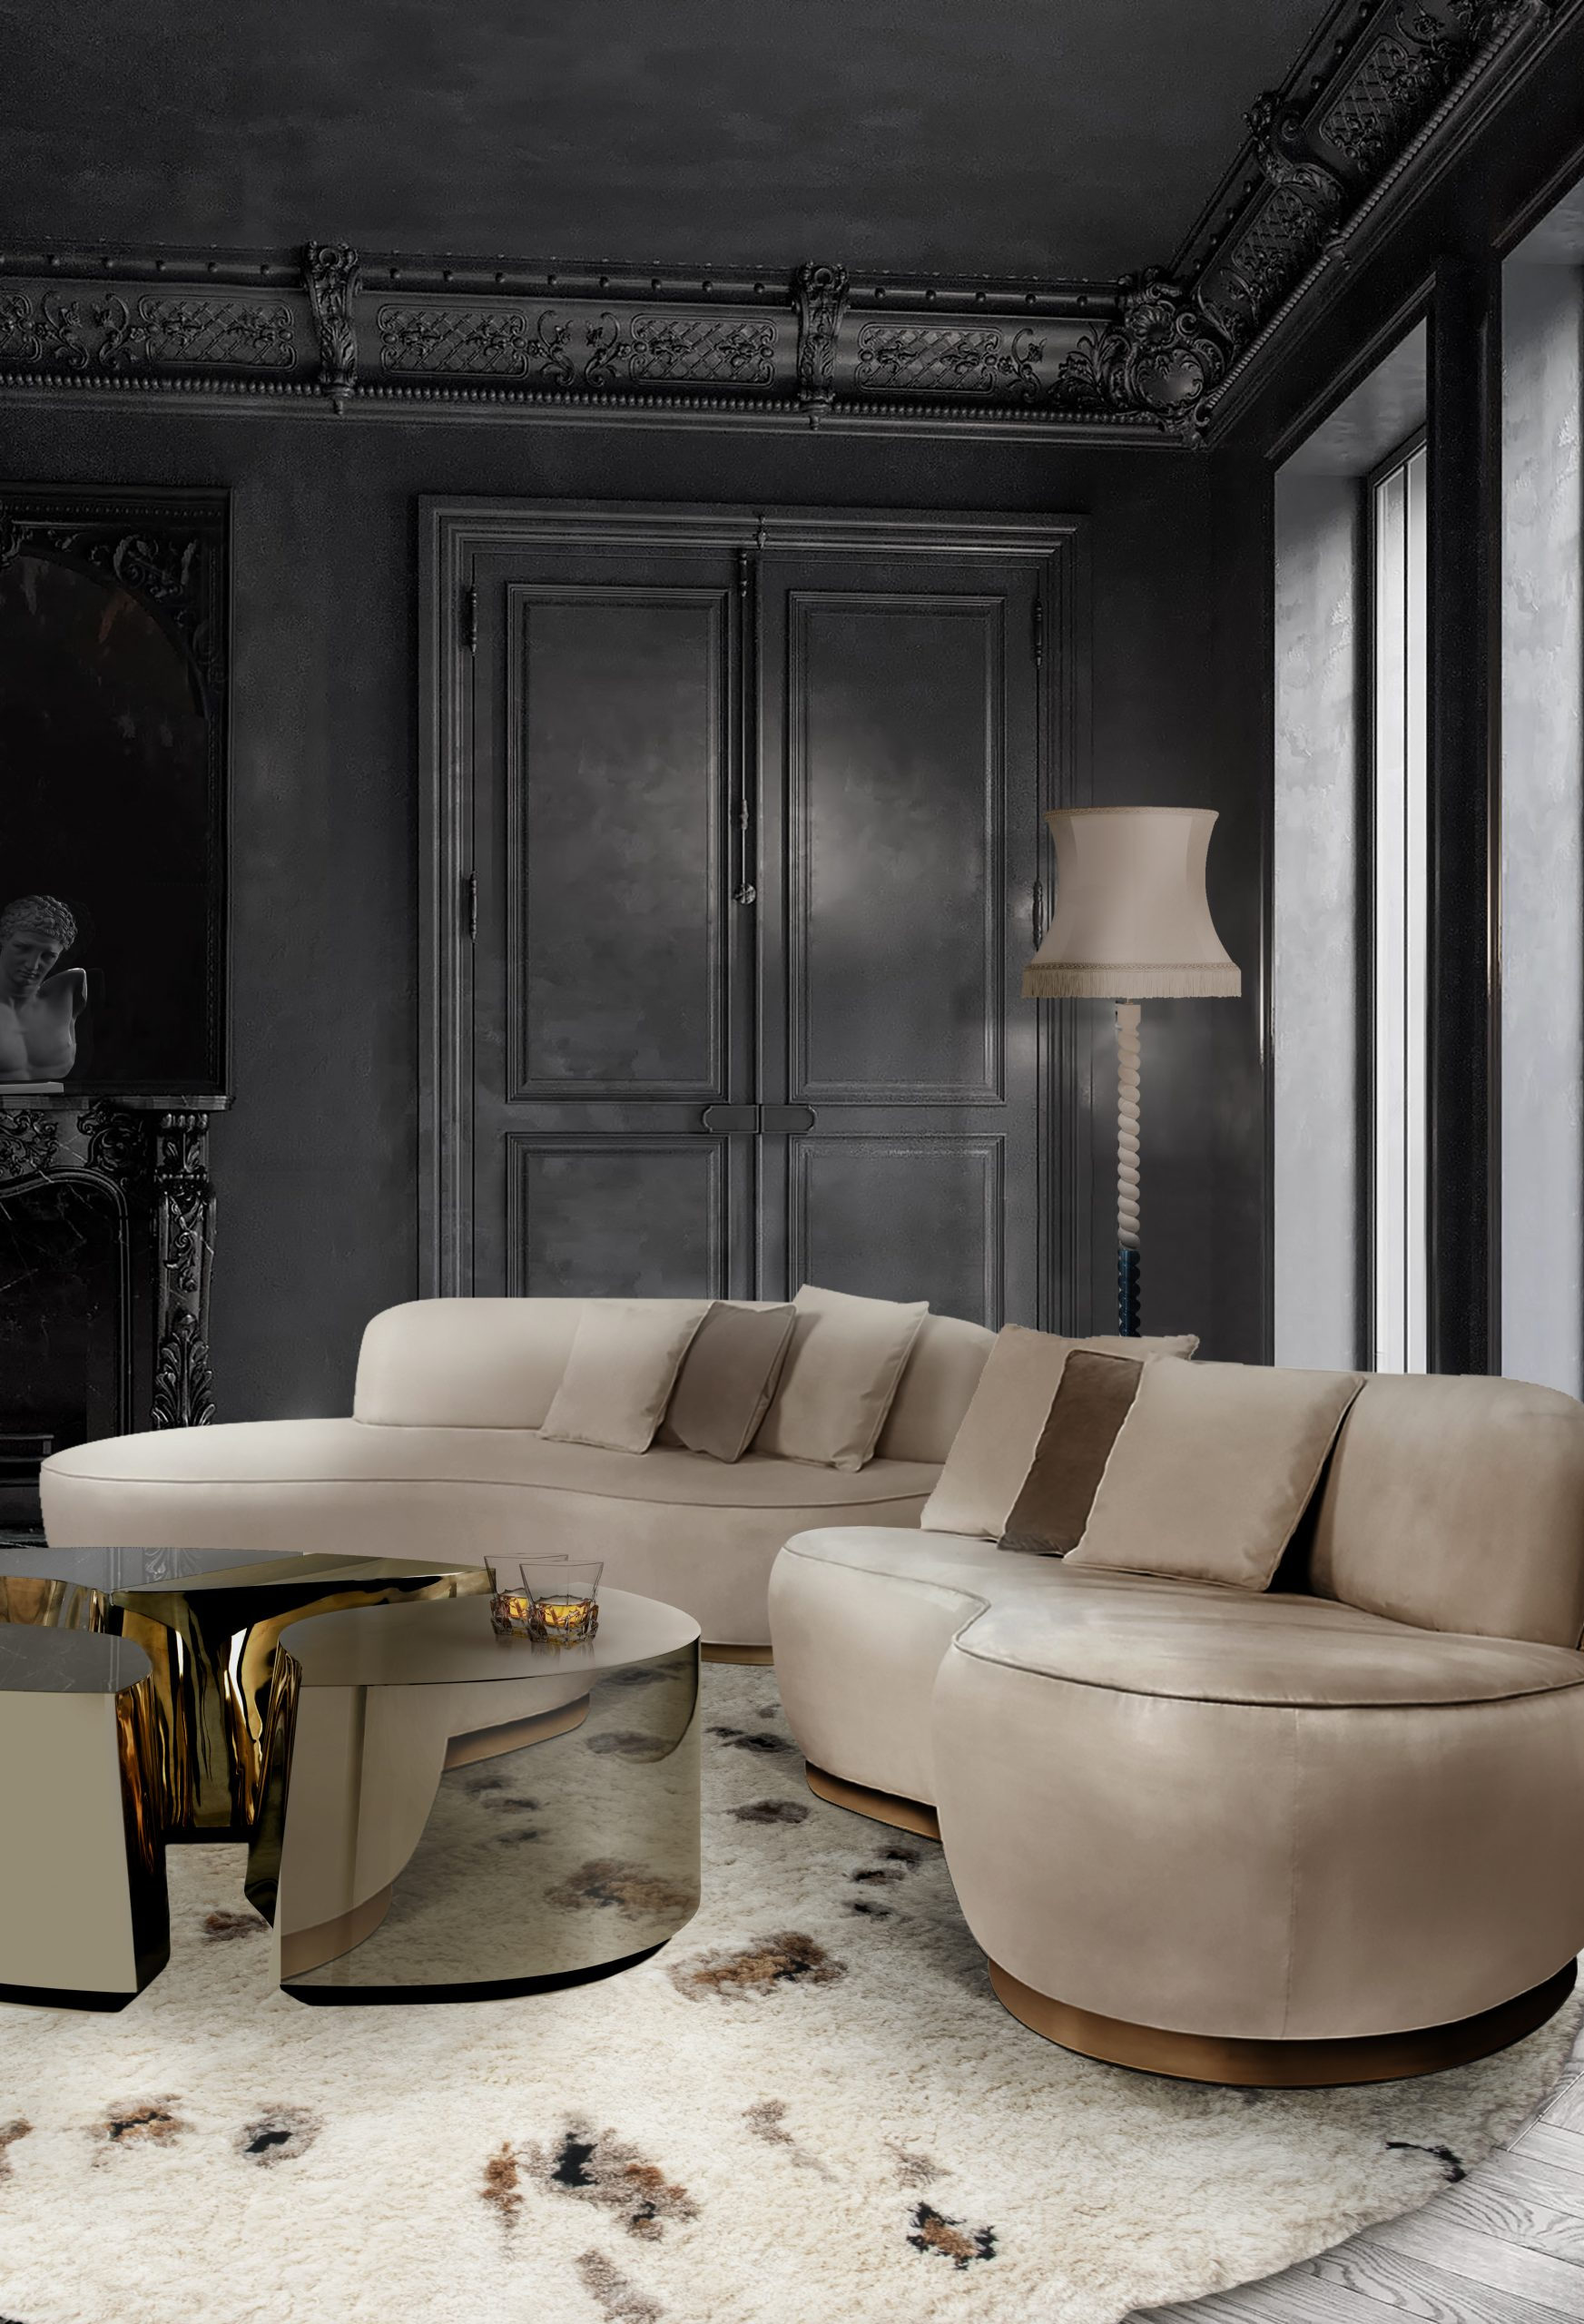 5 Fall Living Room Design Trends You Have to Check Before Rolling Up Your Sleeves for a Home Renovation! fall living room design trends 5 Fall Living Room Design Trends You Have to Check Before Rolling Up Your Sleeves for a Home Renovation! 2 4 scaled